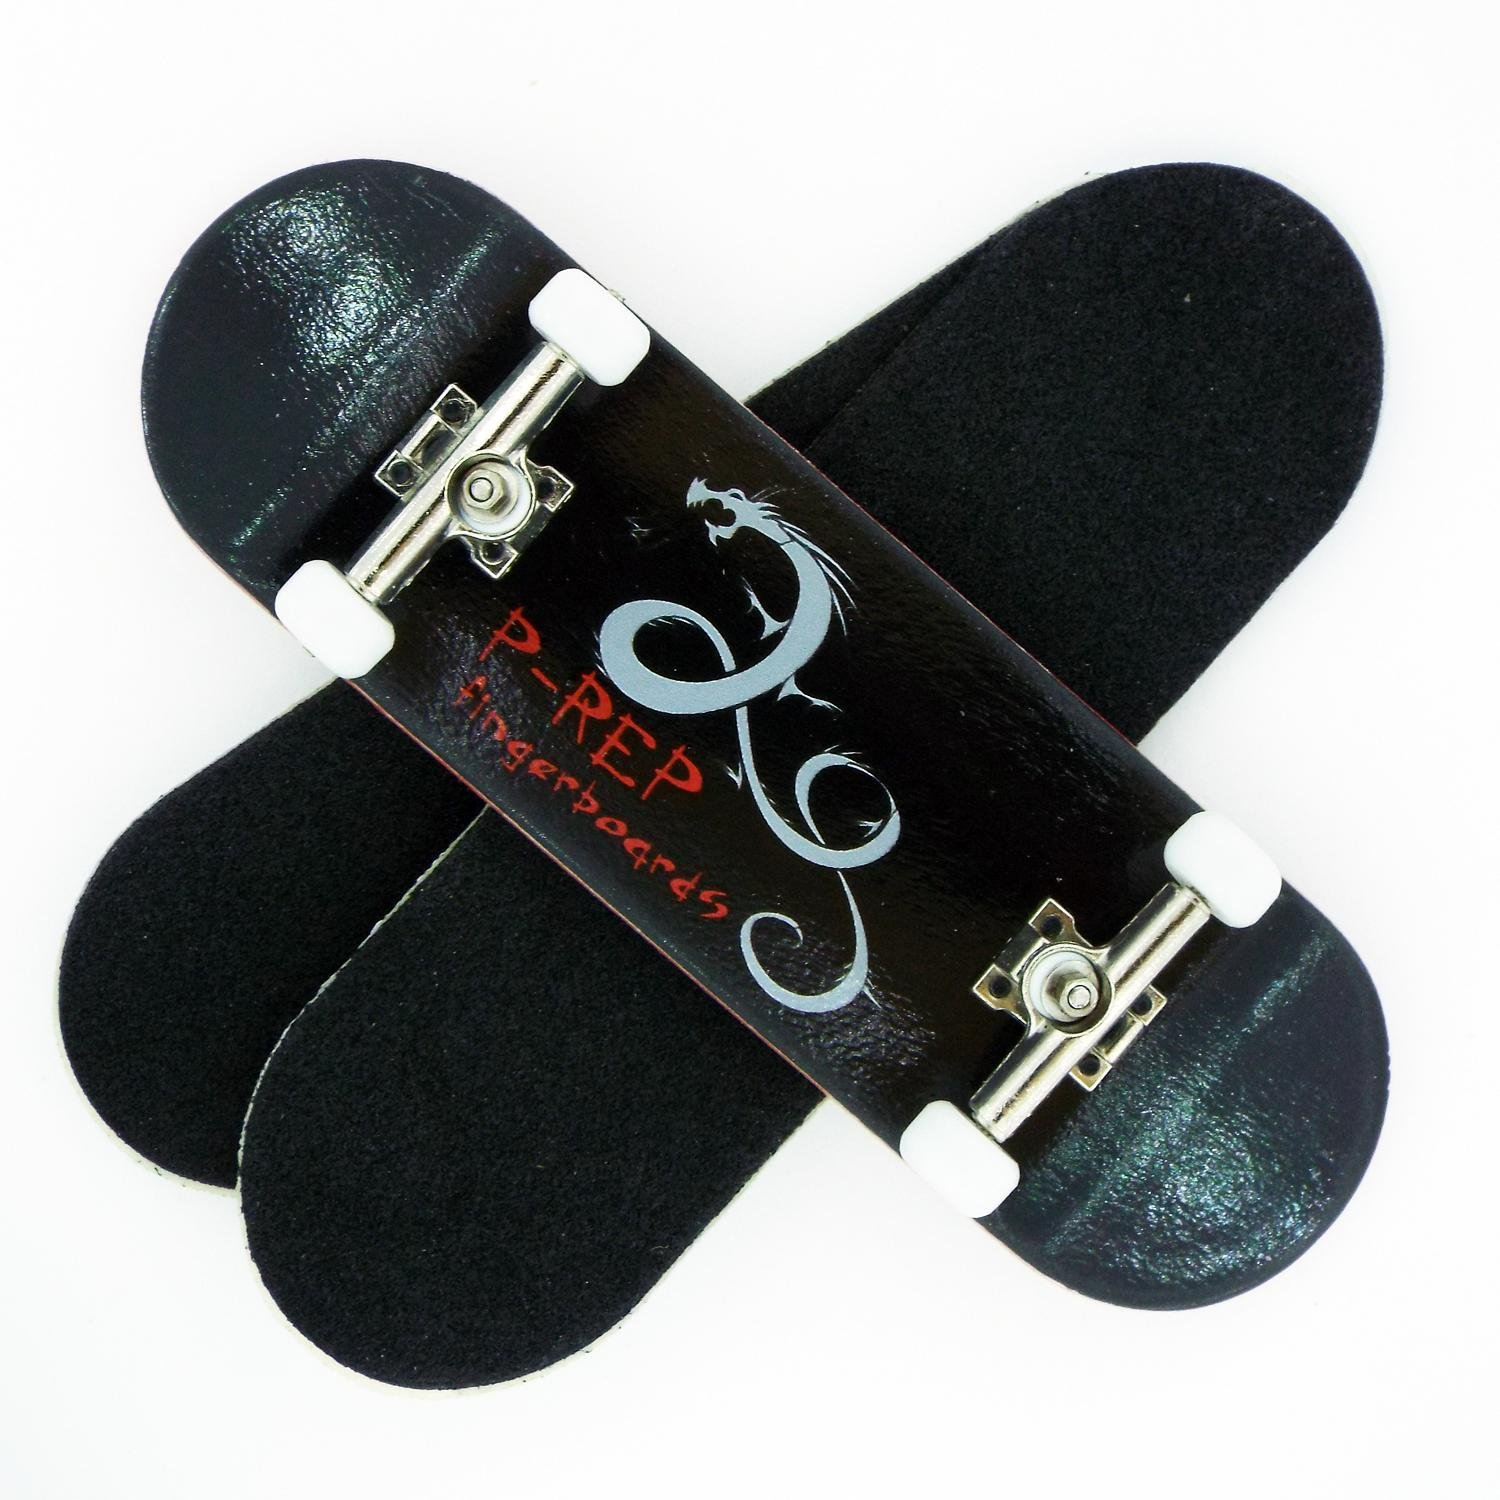 Peoples Republic P Rep Dragon 30mm Graphic Complete Wooden Fingerboard w CNC Lathed Bearing Wheels …